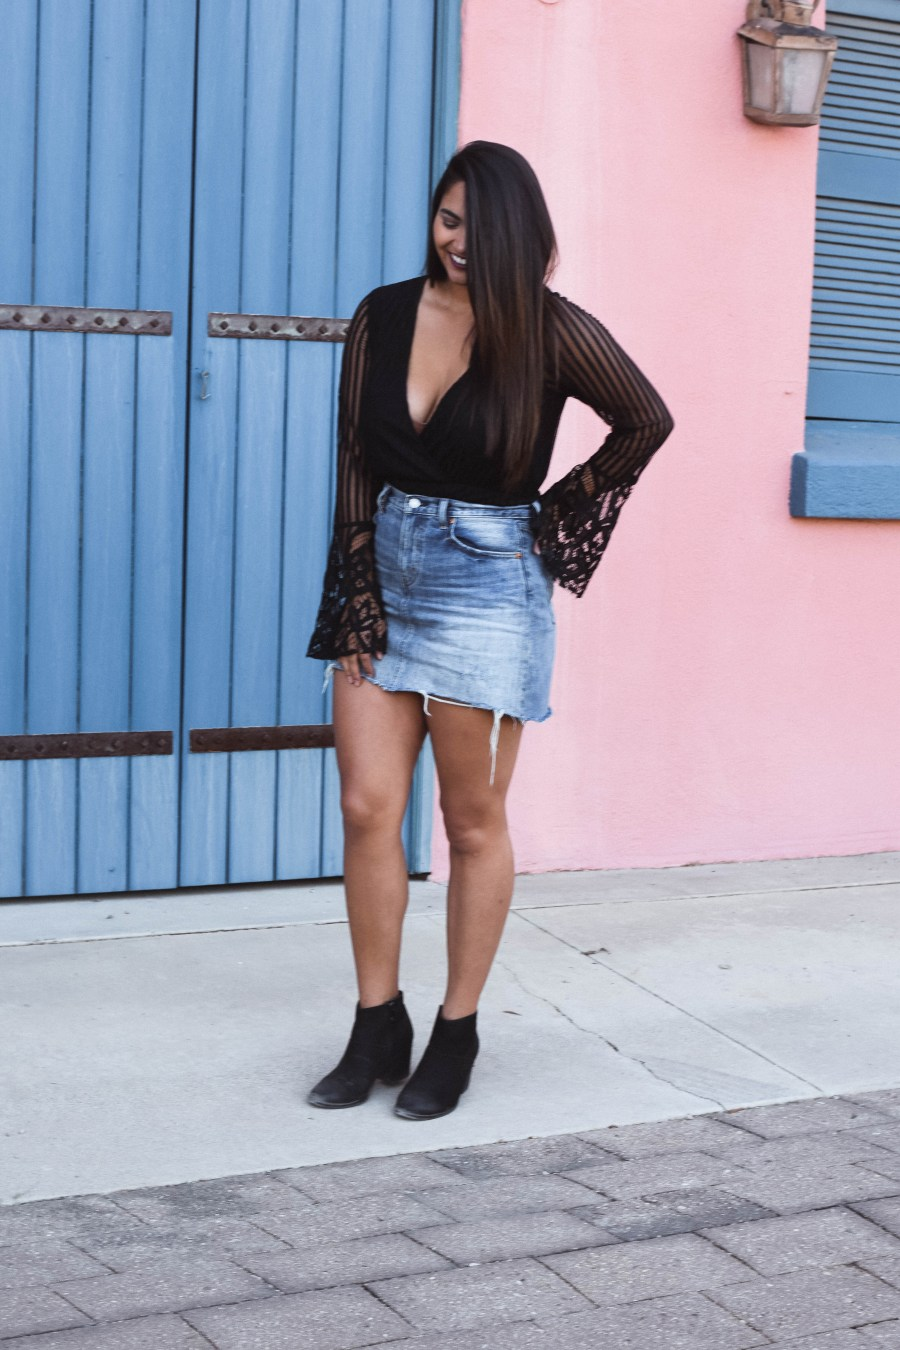 Traveling somewhere a little bit warmer this fall? Check out my tips for fall dressing in warm weather!